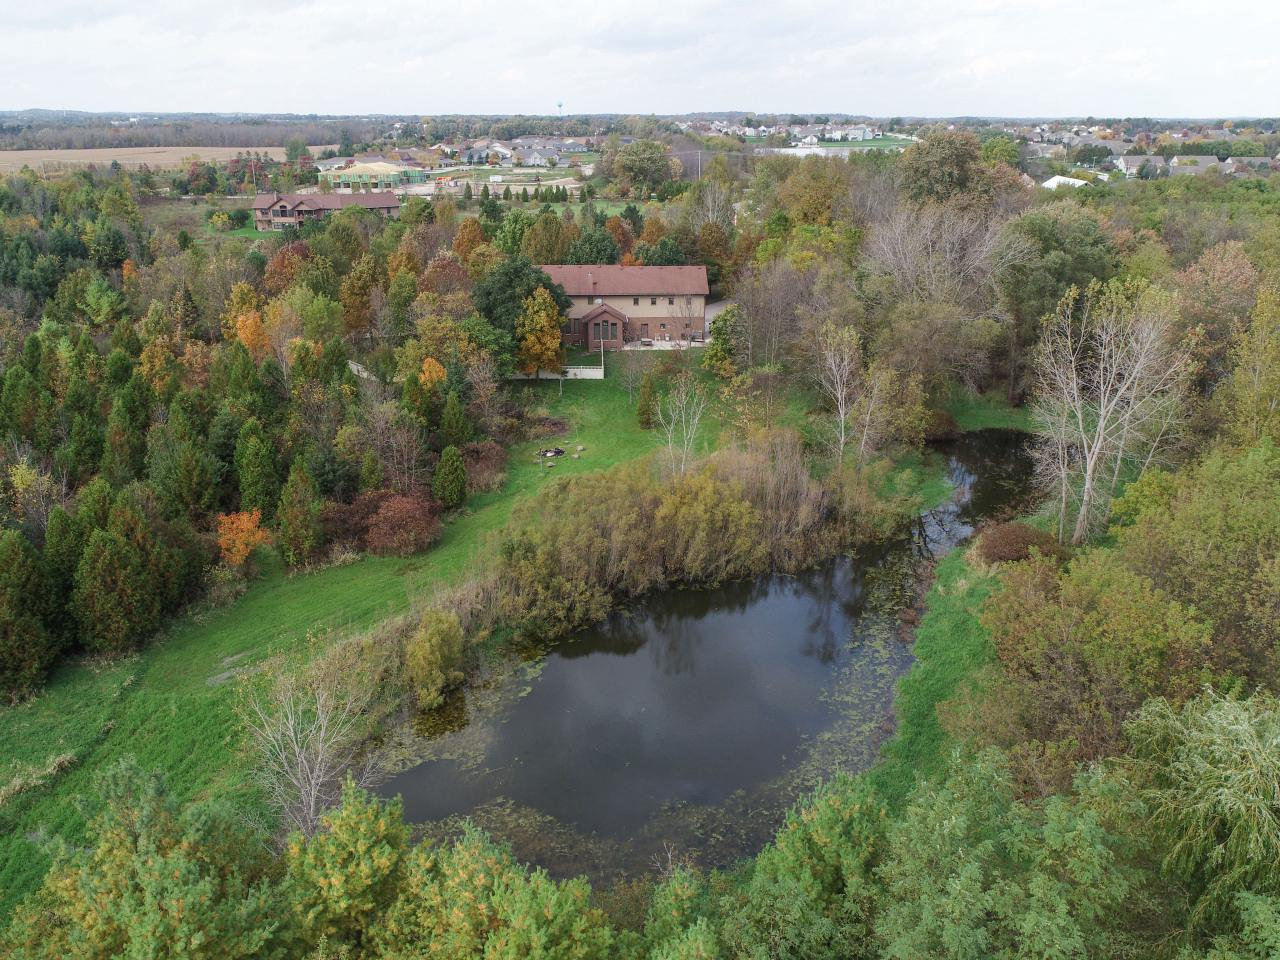 This is your chance to own 24 acres of paradise! Enjoy the abundant wildlife, hiking and hunting. Sip your morning beverage while watching the deer, turkey or the birds in the pond. Take a hike and stop at the creek. Custom built brick home features solid oak flooring, custom mill work, built-ins, Pella windows and much more! Huge bonus room above garage with new flooring. Freight elevator makes moving large items to the second floor a breeze. 30x50 and 25x30 pole buildings for plenty of extra storage. Recent updates include granite counter tops in kitchen, air conditioner, furnace, refinished hardwood floors on main, whole home generator, air exchanger, Weather Tight front door. HSA home warranty provided.